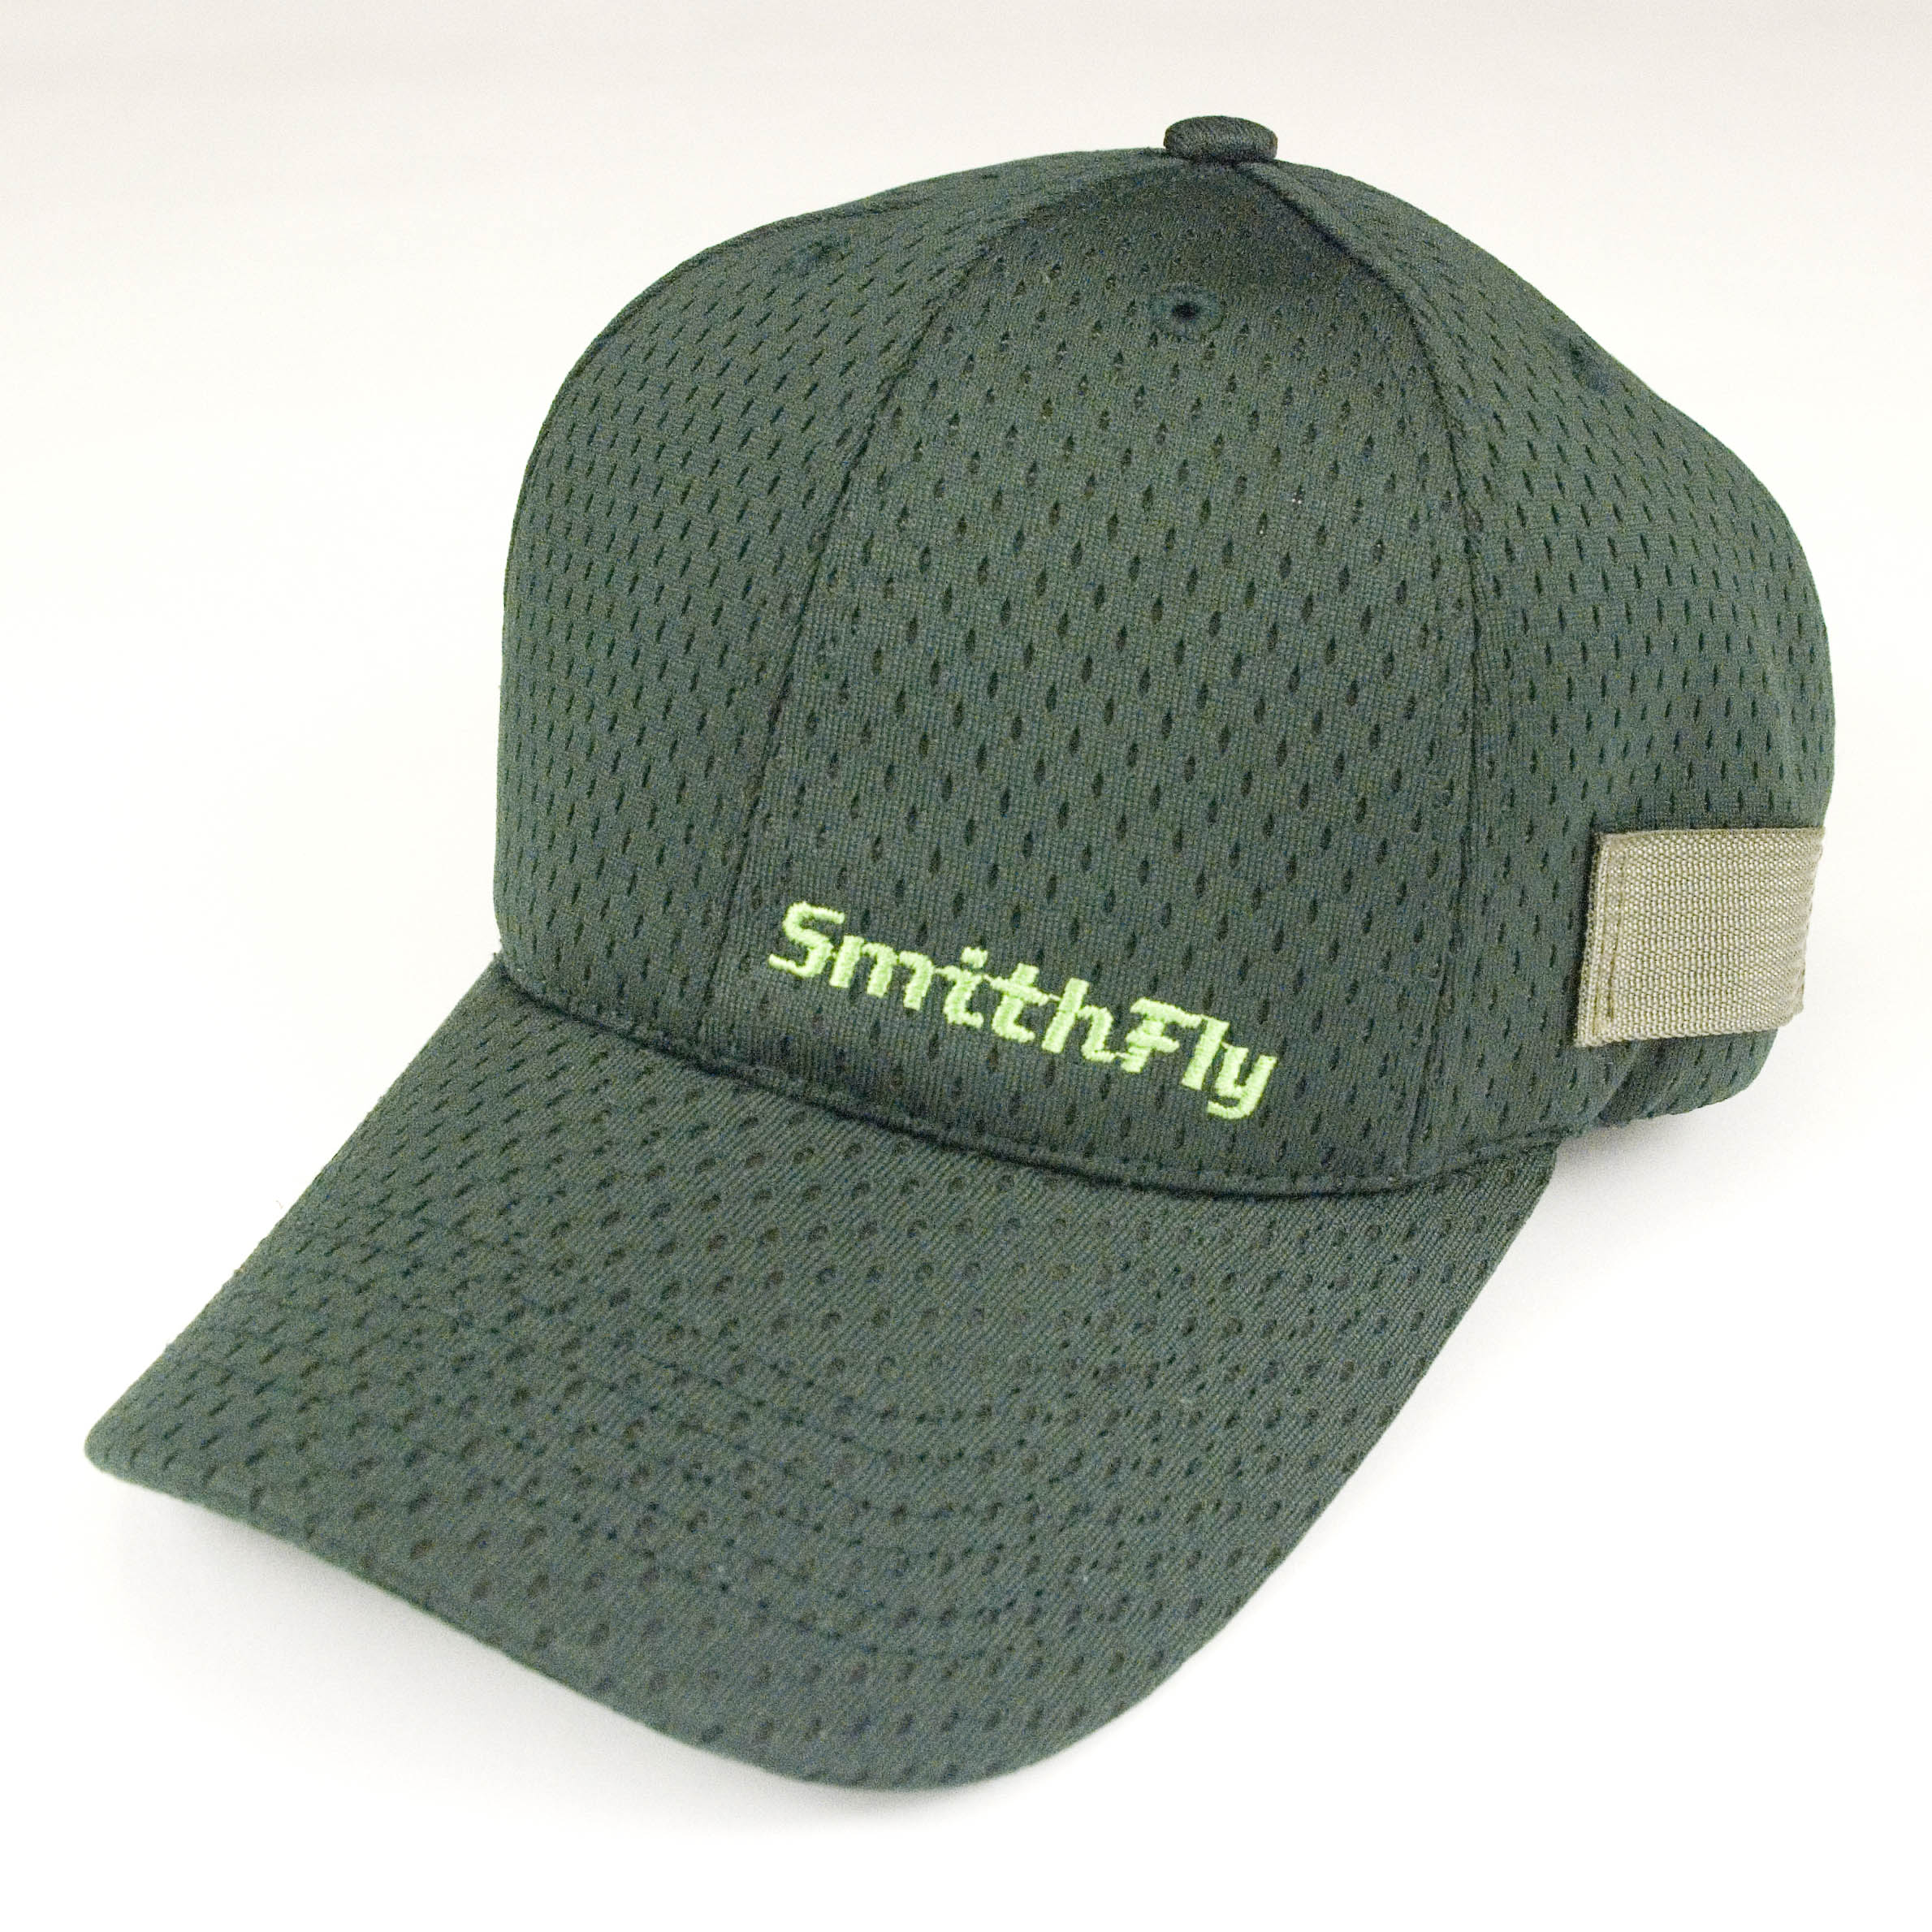 cool new smithfly hats are cut sewn and assembled in the